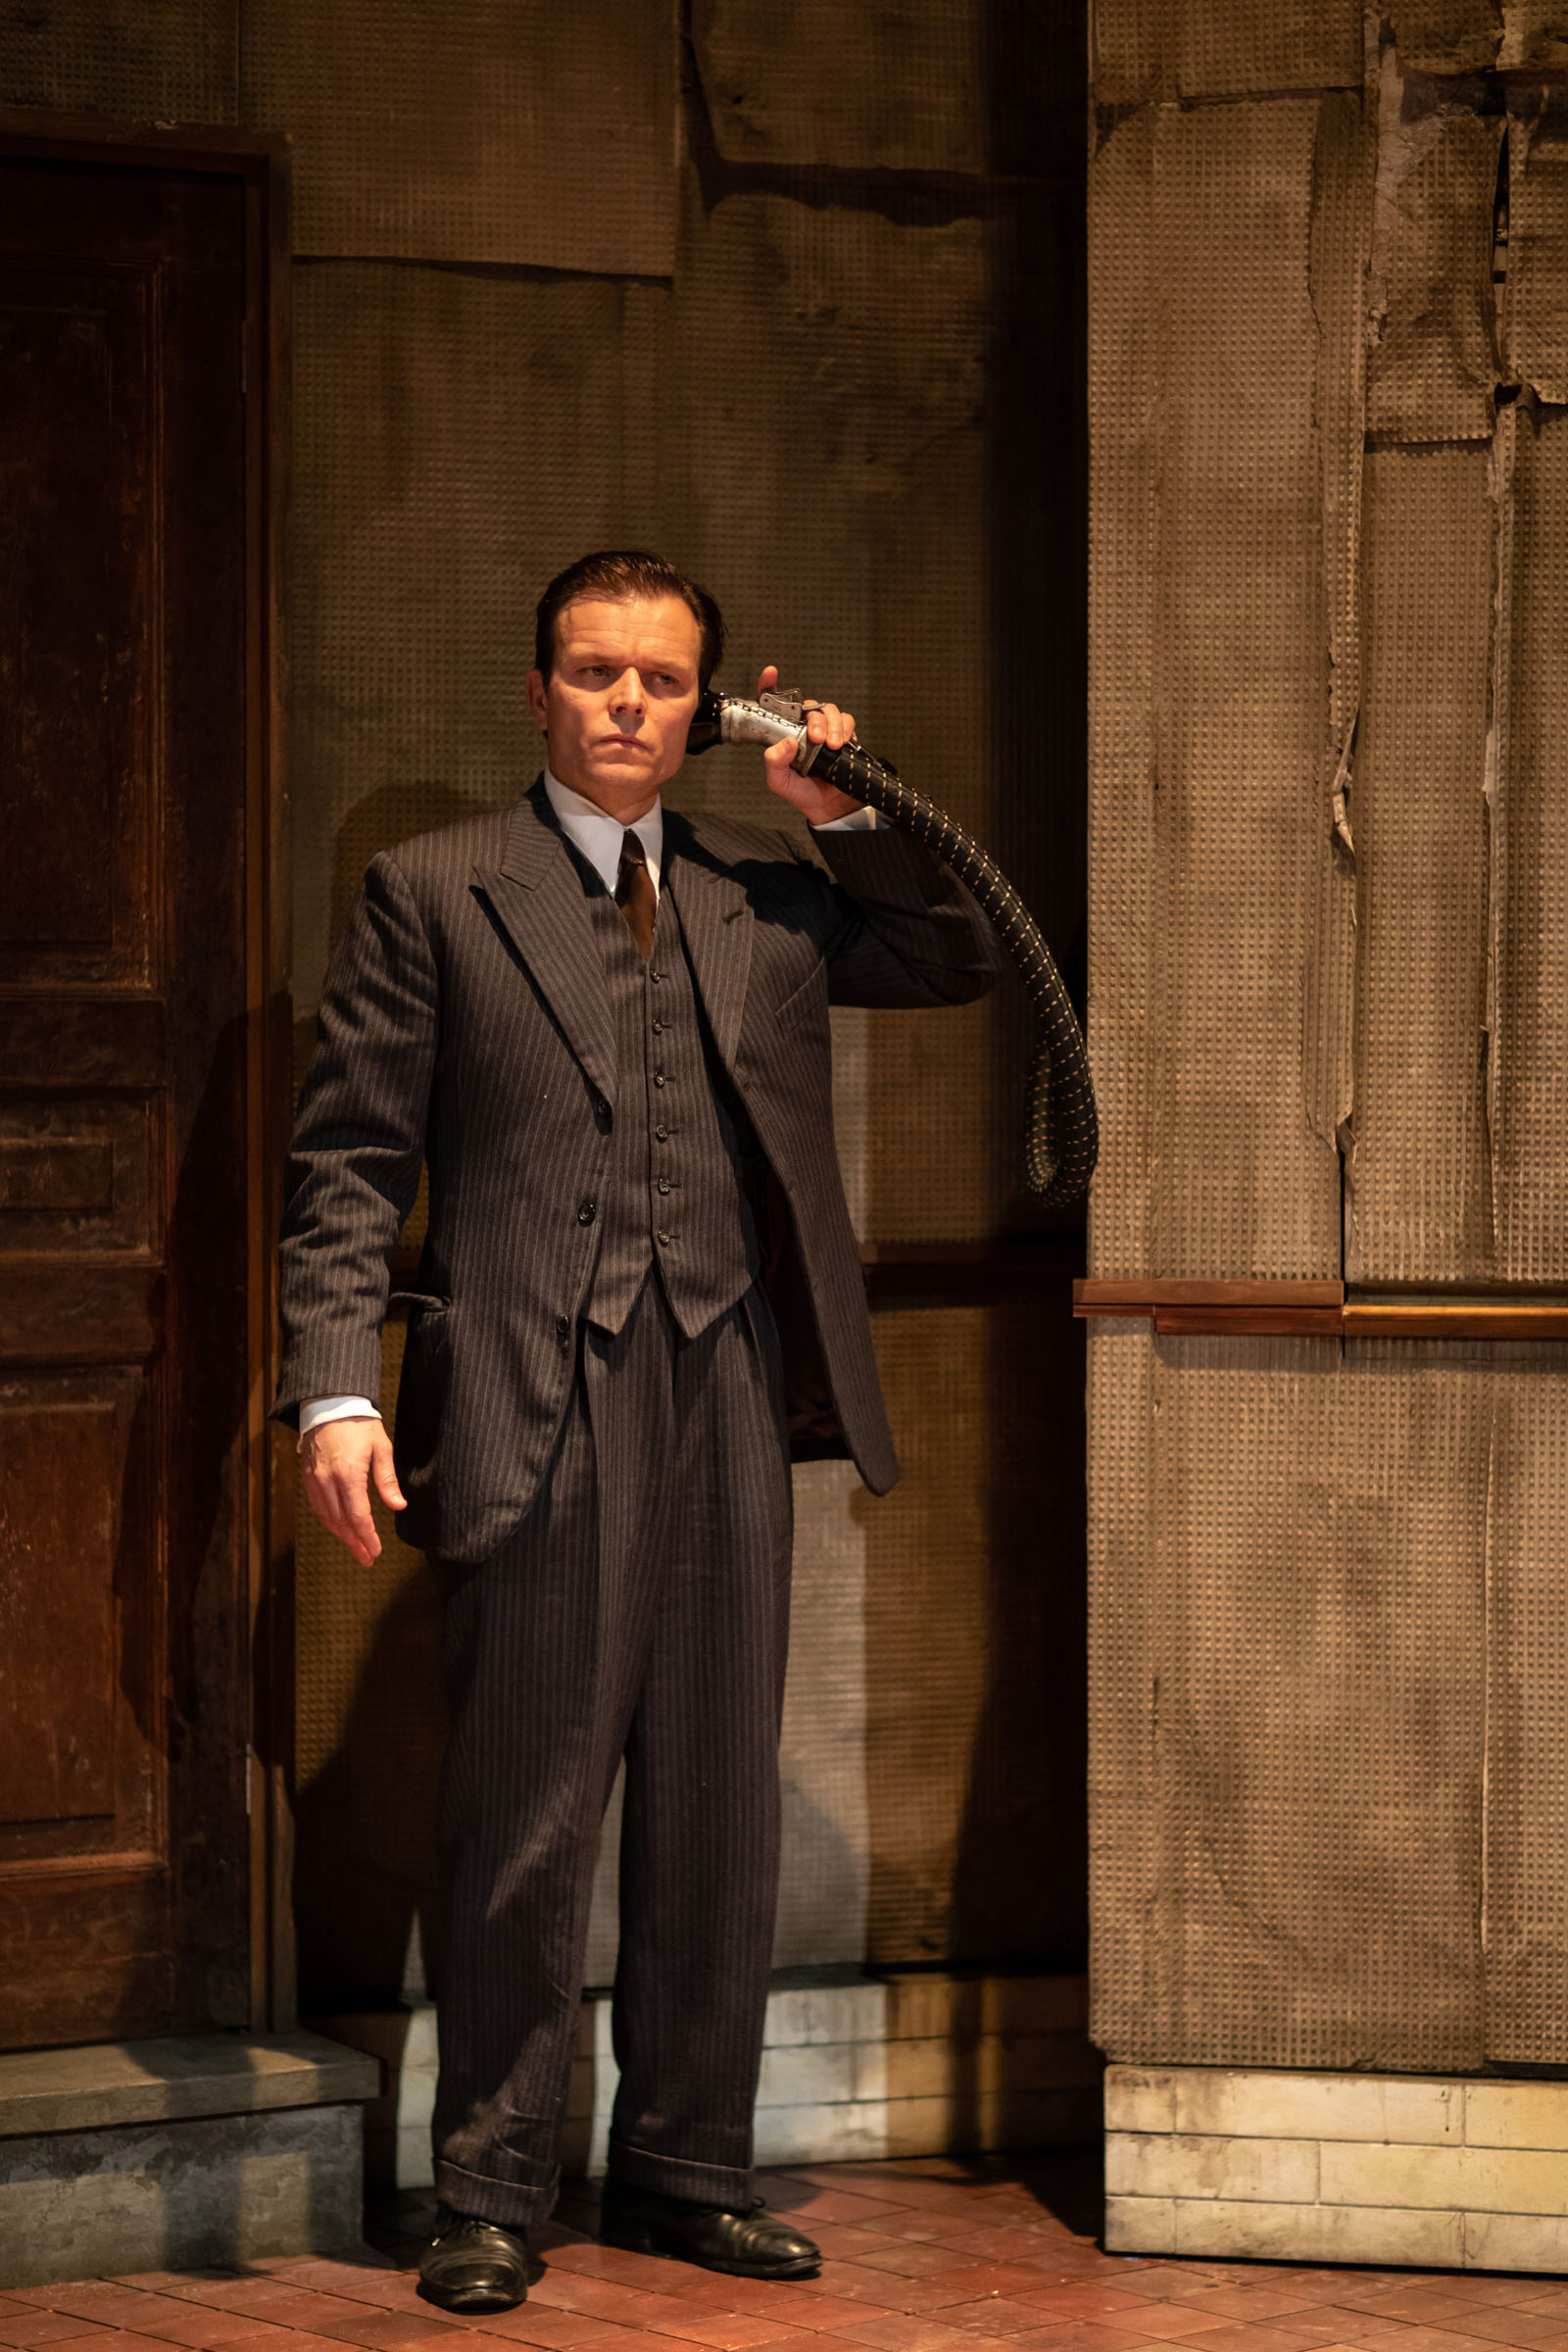 Alec Newman as Ben, listening to the voicepipe of the dumb waiter